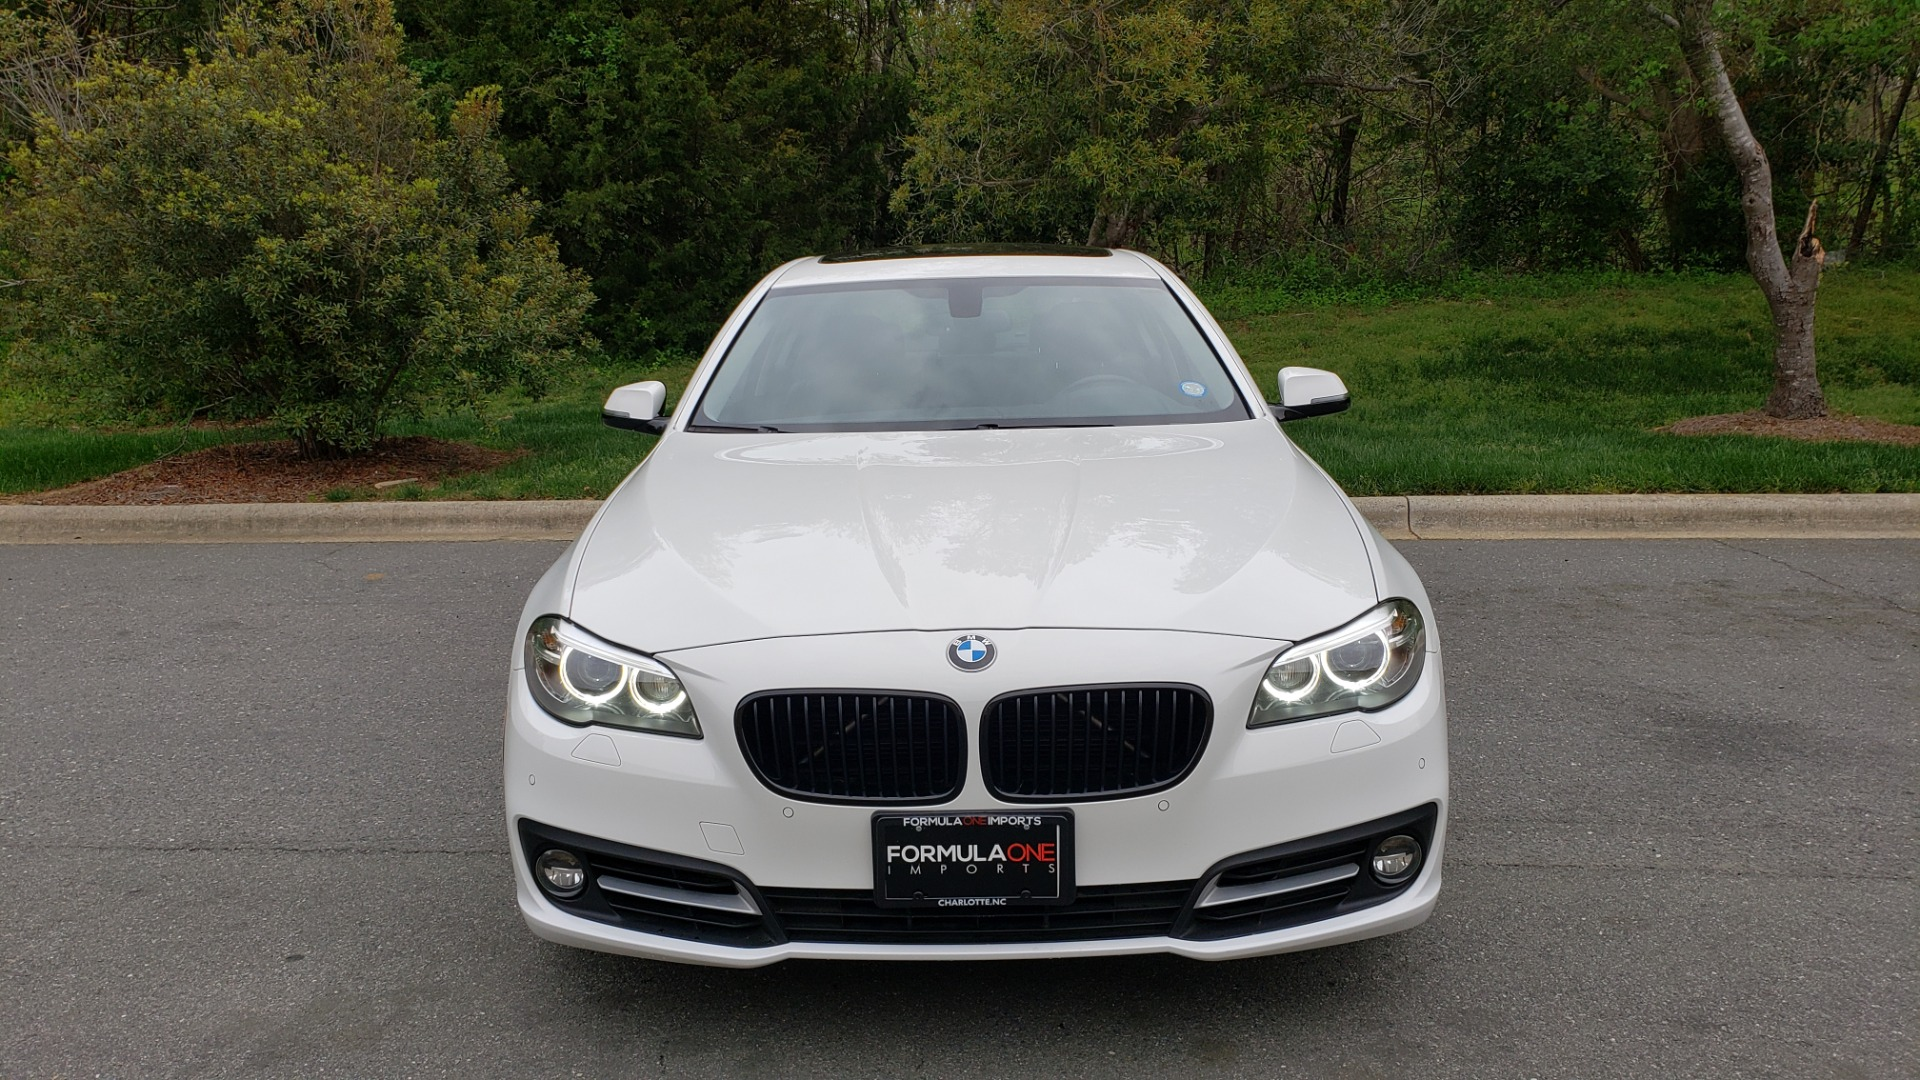 Used 2016 BMW 5 SERIES 528I XDRIVE SPECIAL EDITION / NAV / SUNROOF /HTD STS / REARVIEW for sale Sold at Formula Imports in Charlotte NC 28227 21